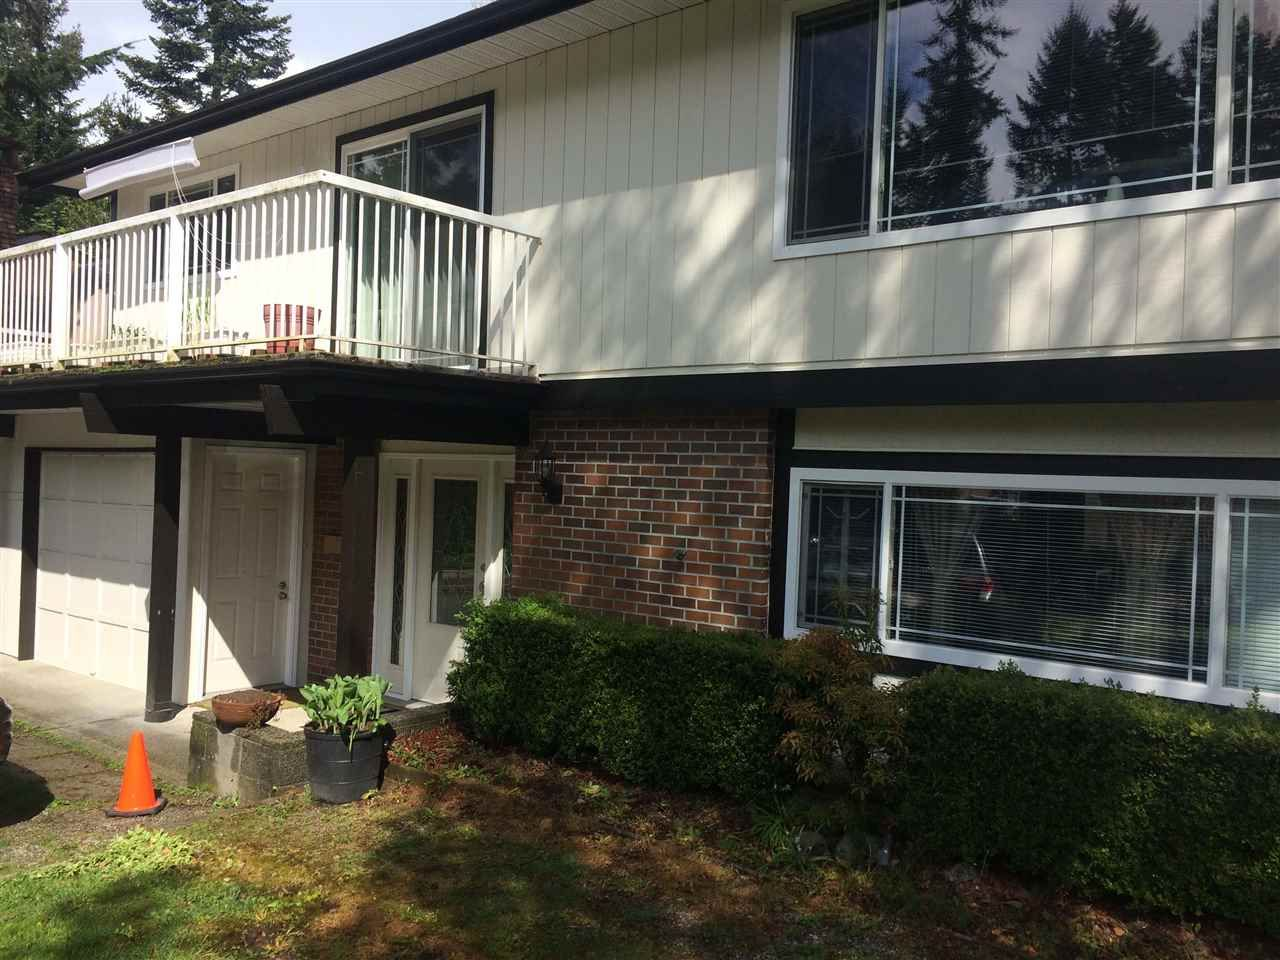 Photo 3: Photos: 3097 MARINER Way in Coquitlam: Ranch Park House for sale : MLS®# R2025079